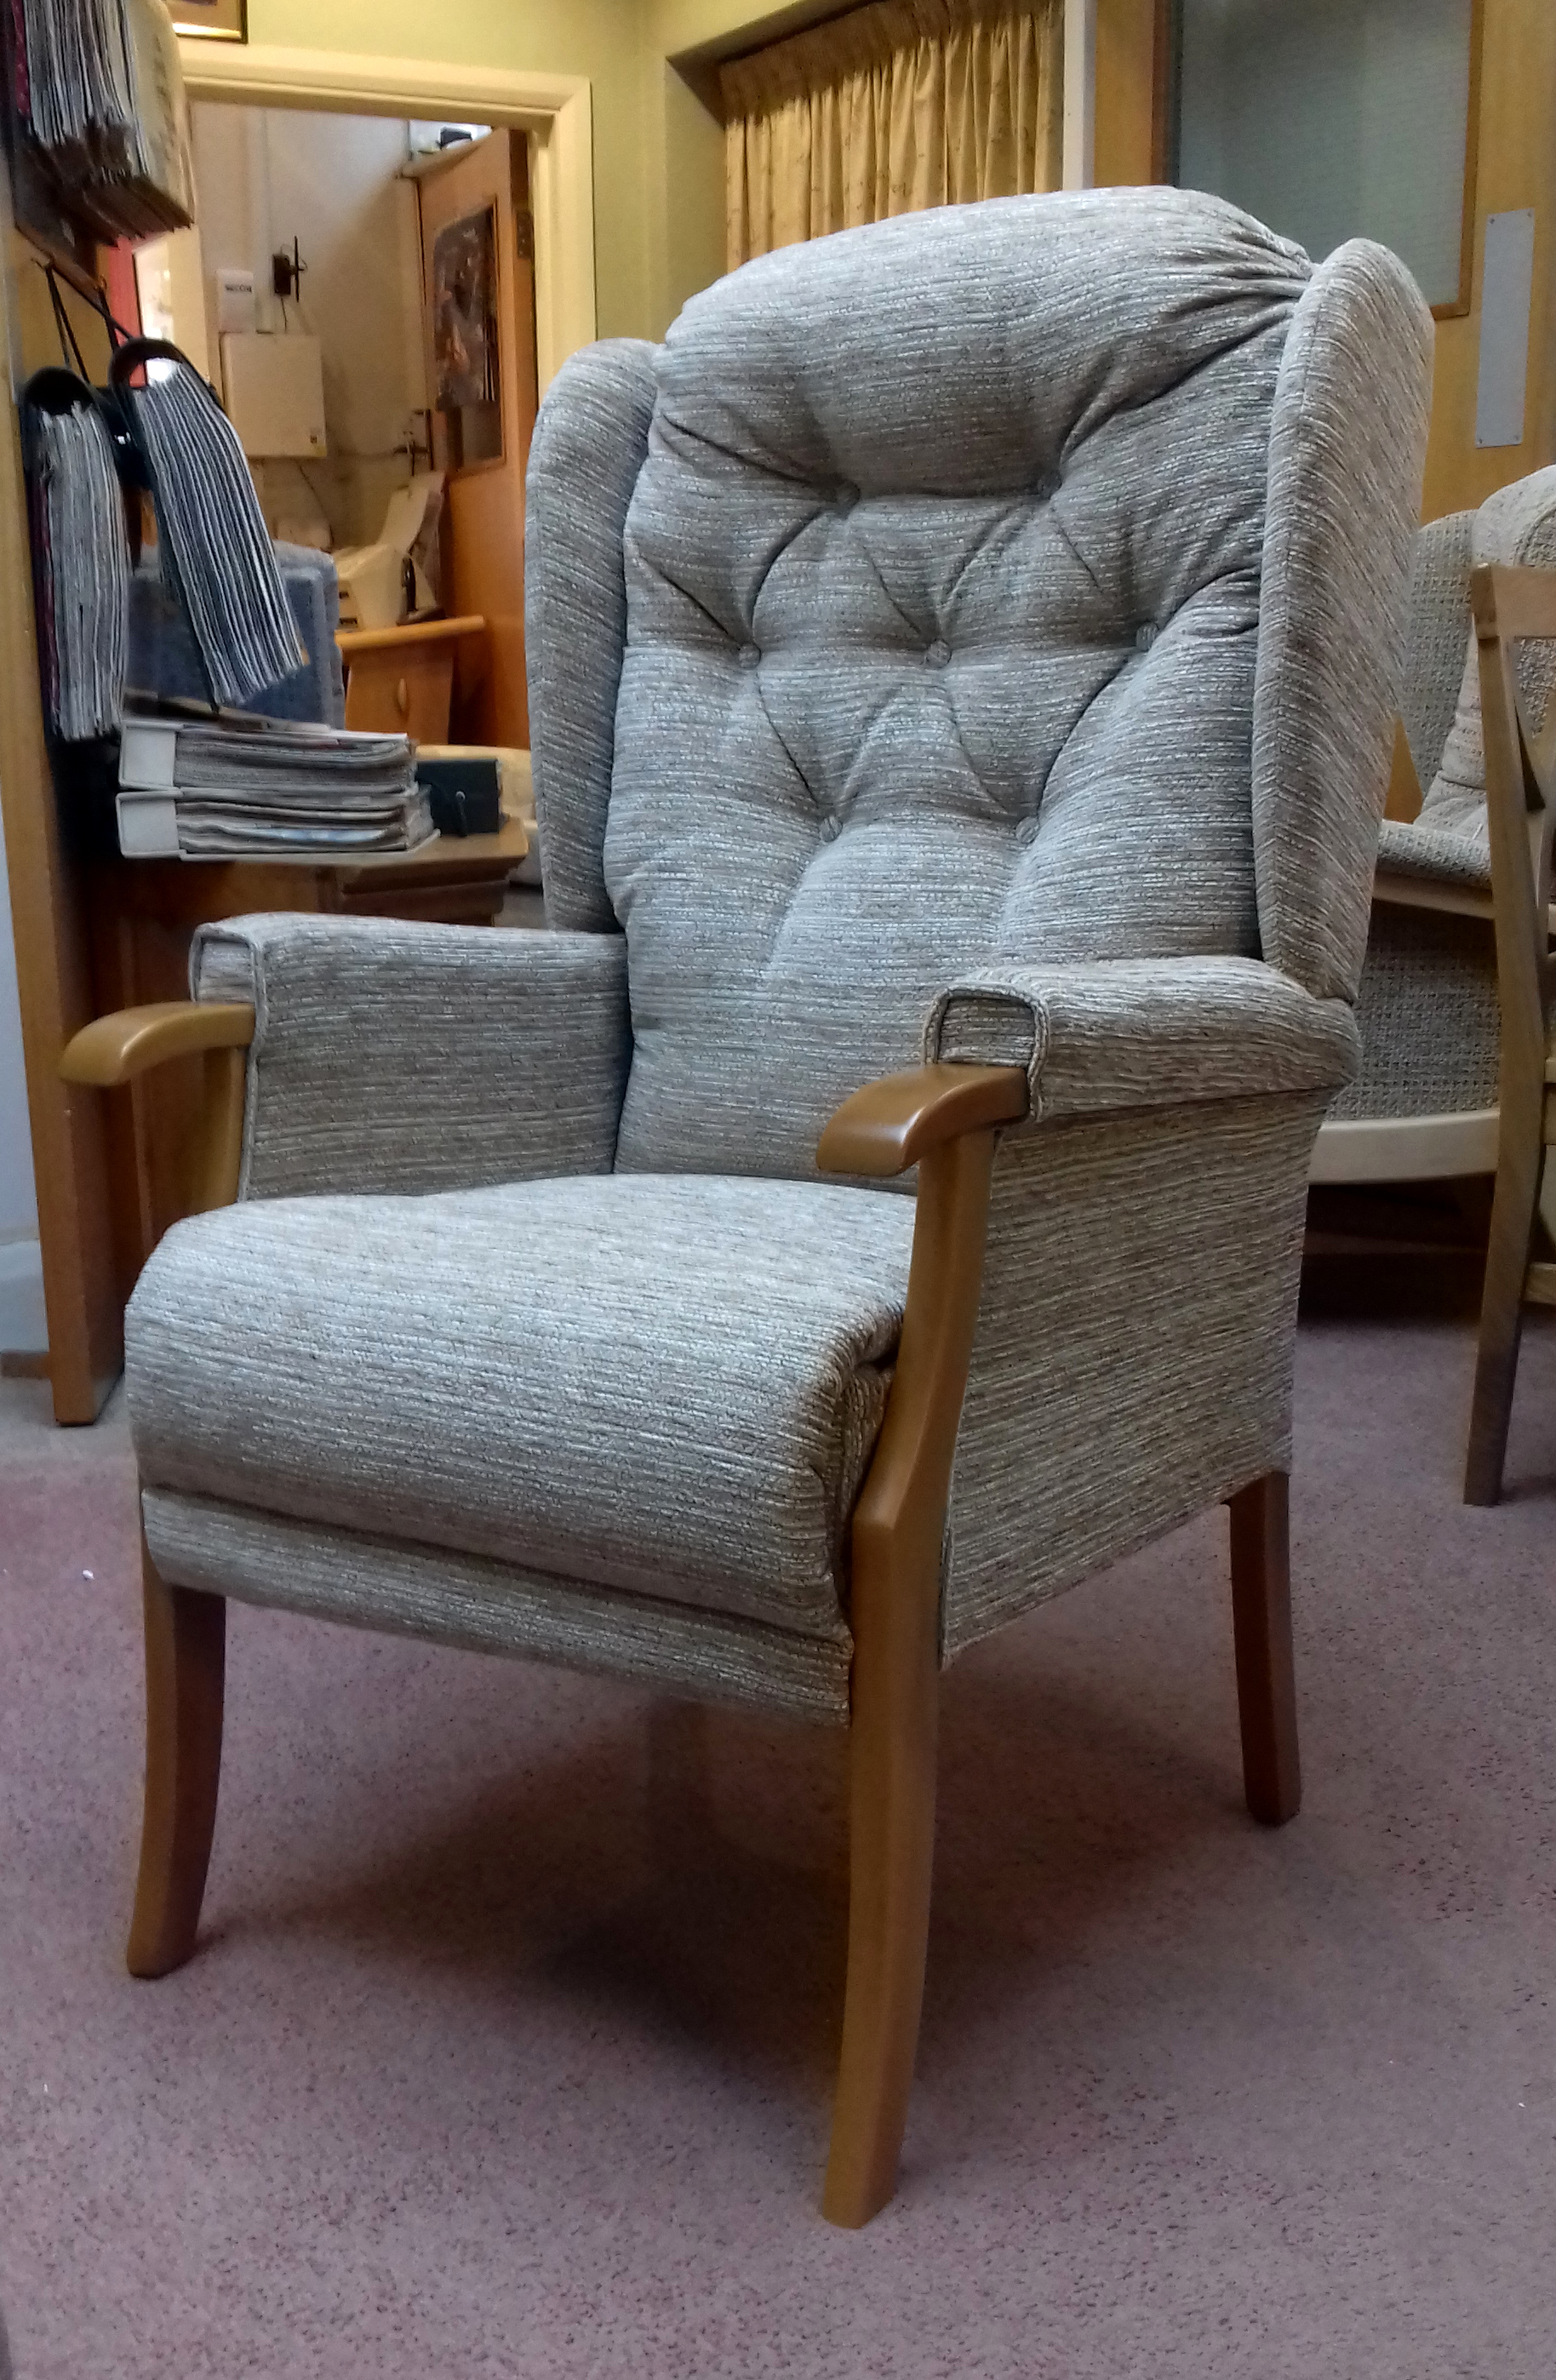 homes recliners adam gardens chairs dorel recliner furniture adams better details seen products on living eng designing cognac pushback spaces as and